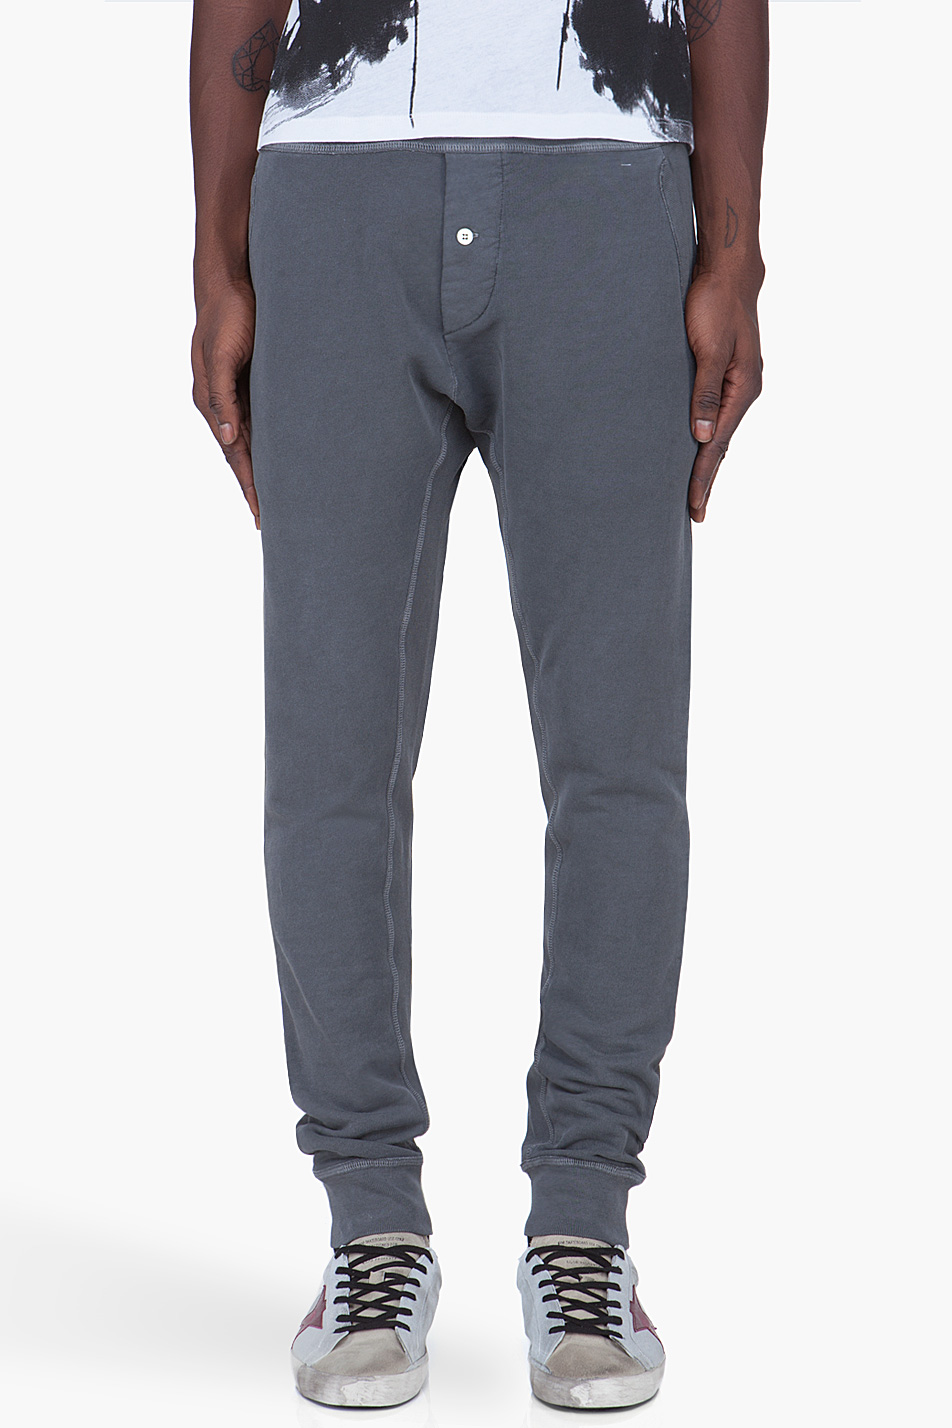 These drop-crotch jogger pants are perfect for such occasions. What's best about them is that they strike the perfect balance between casual comfort and style - being comfortable as well as fashion-forward all at the same time.